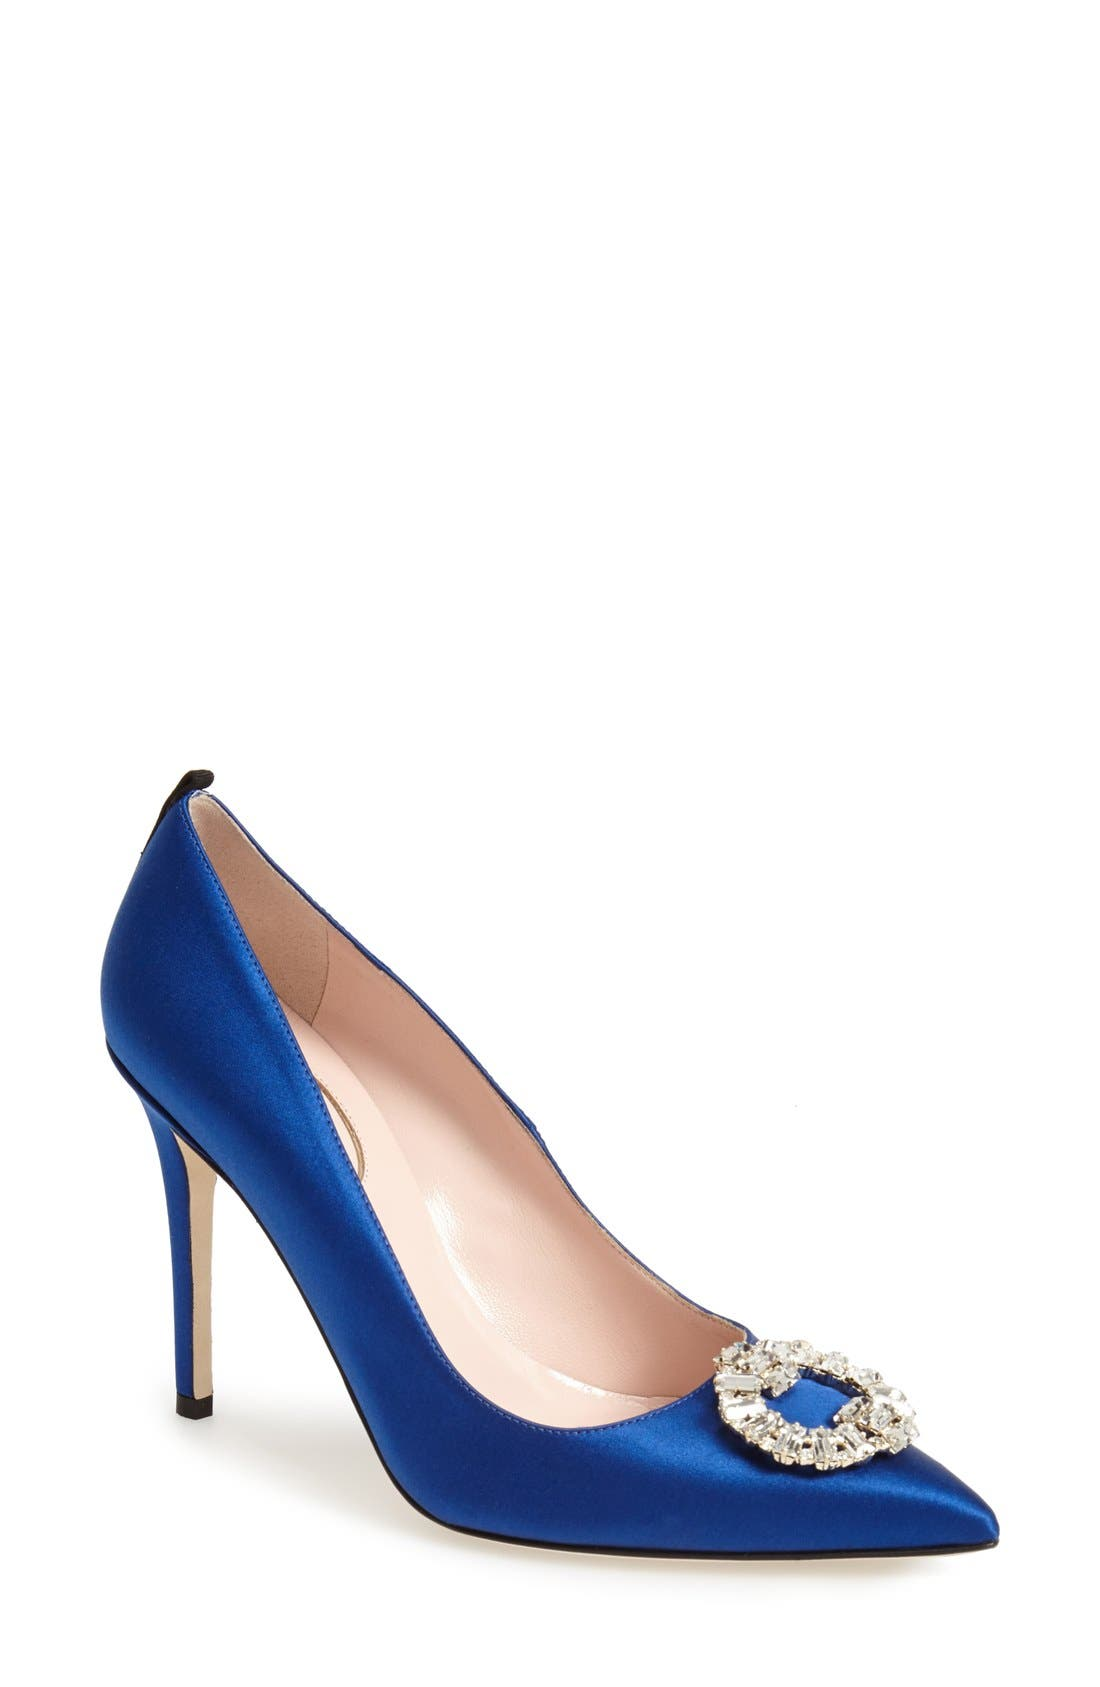 'Maddalena' Pointy Toe Pump,                             Main thumbnail 1, color,                             Blue Satin